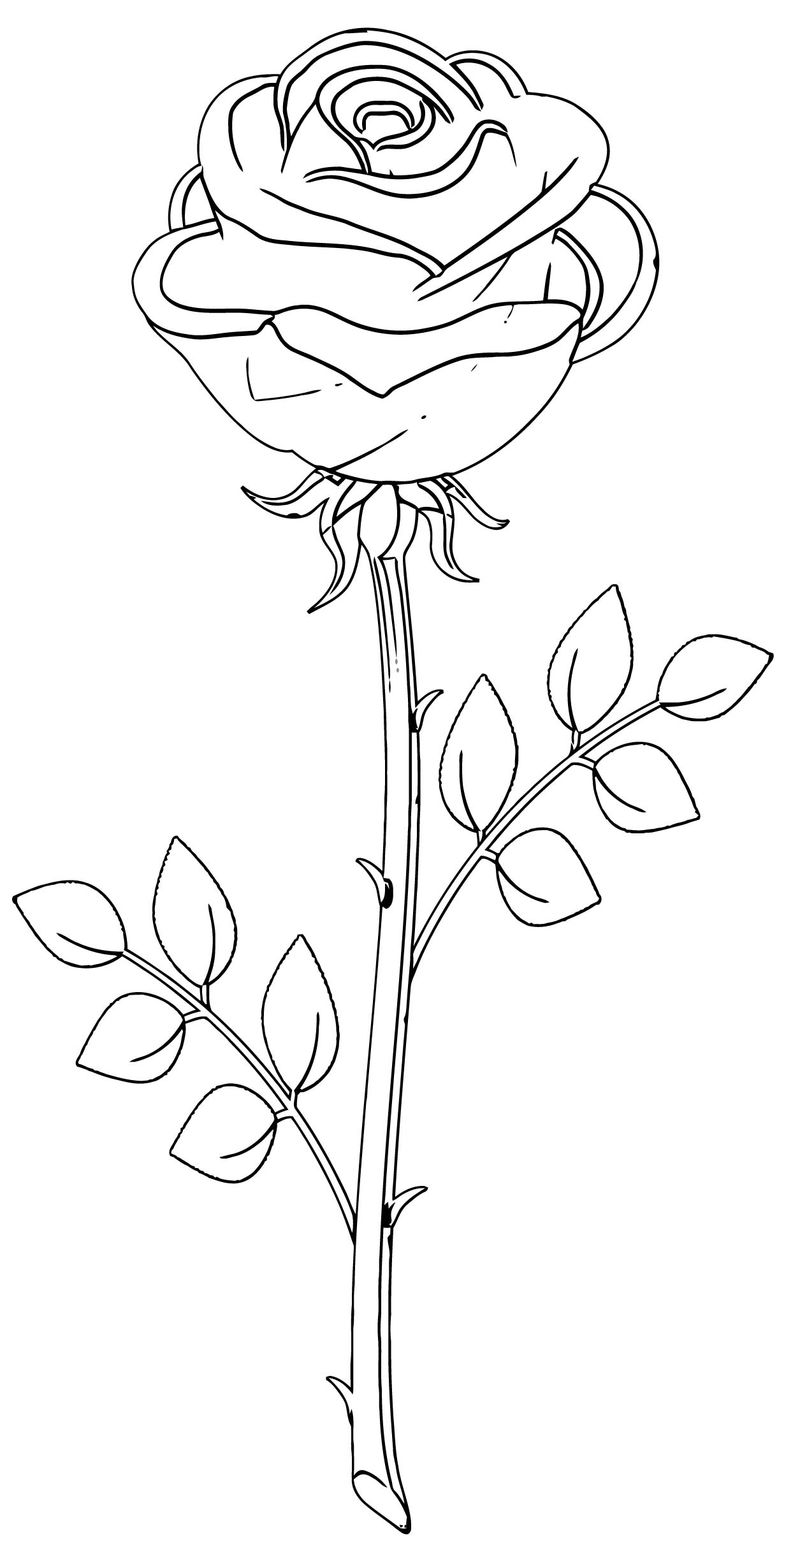 Rose Flower Coloring Page 020